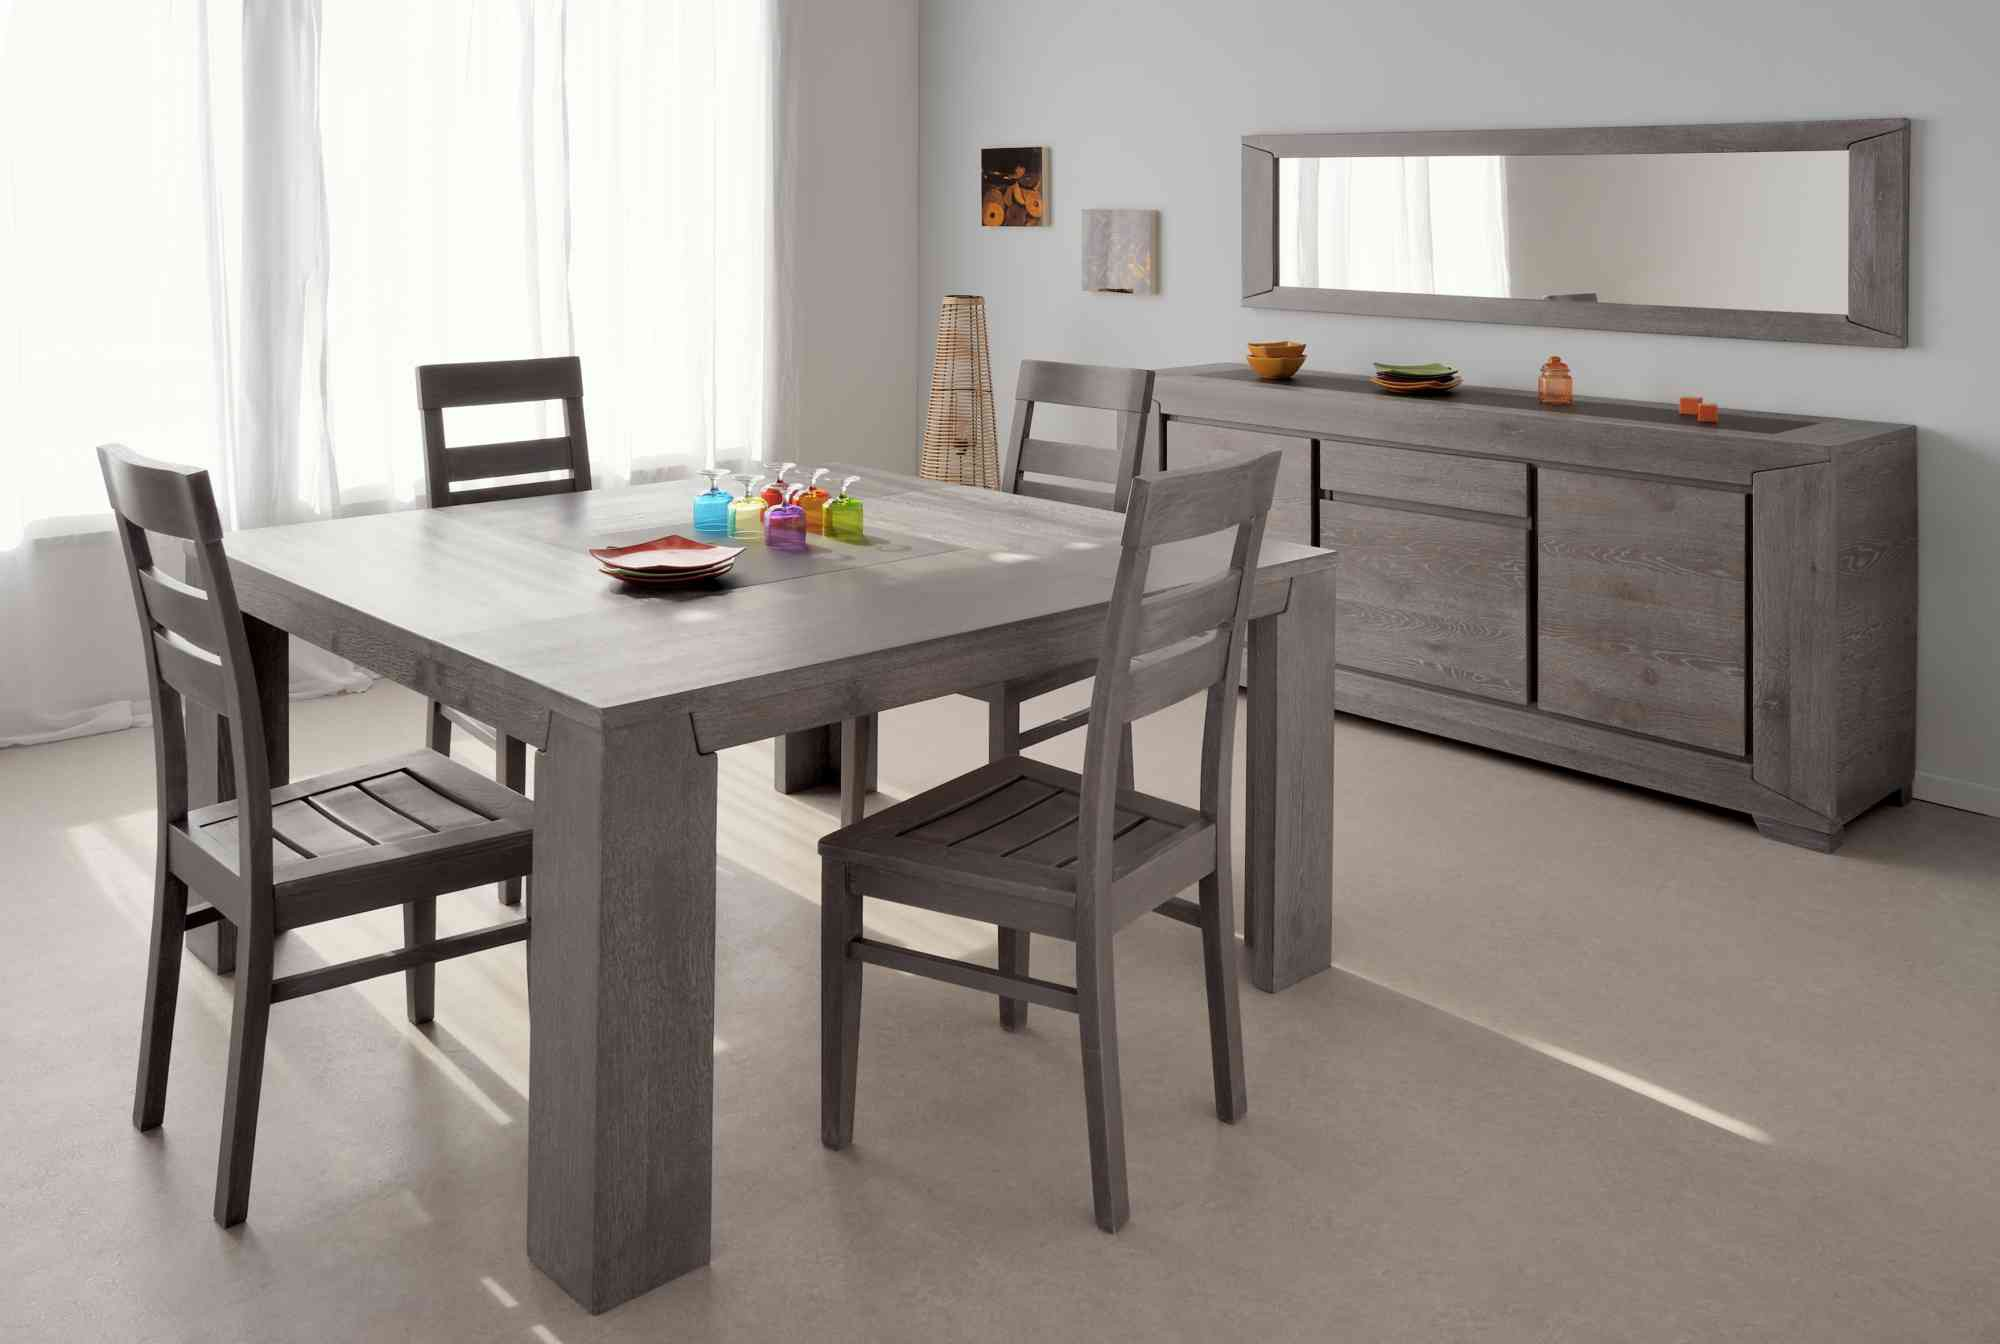 Tables et chaises de salle a manger but for Table salle a manger plus chaise